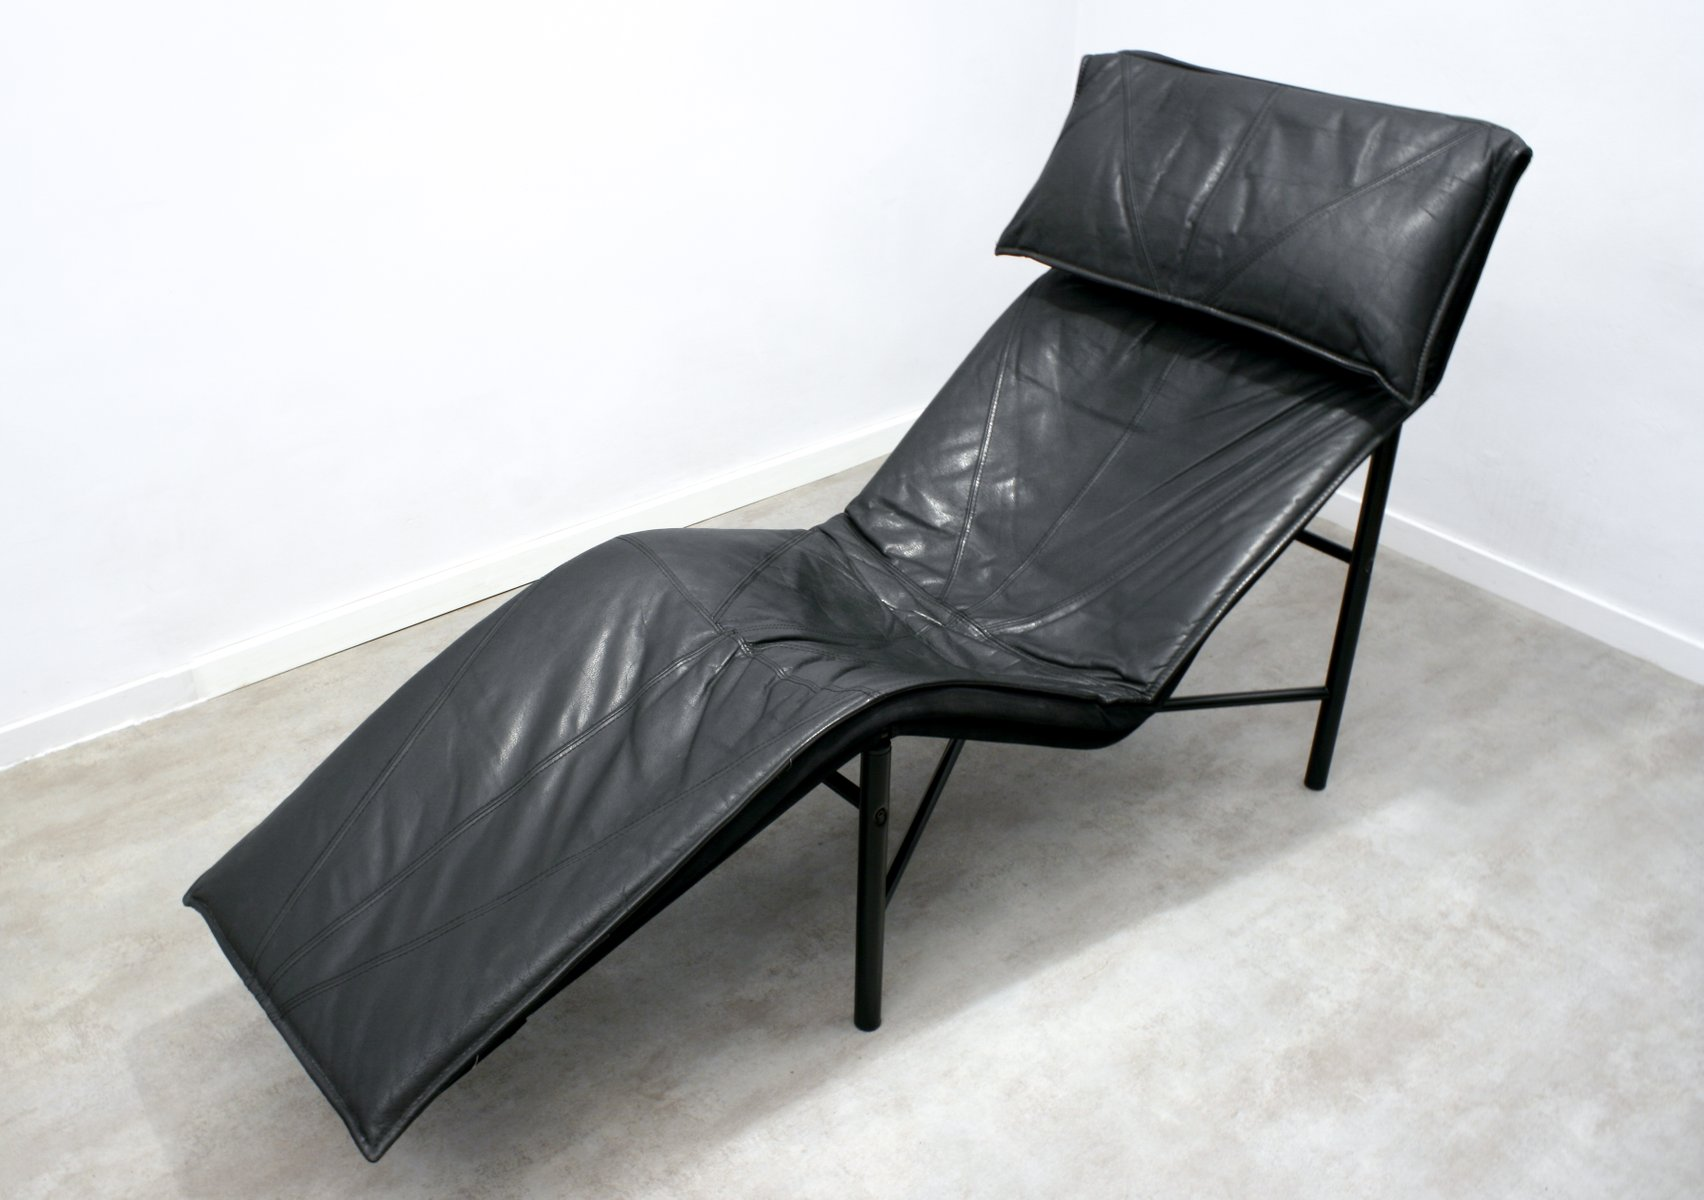 Black leather skye chaise longue by tord bj rklund for for Black leather chaise